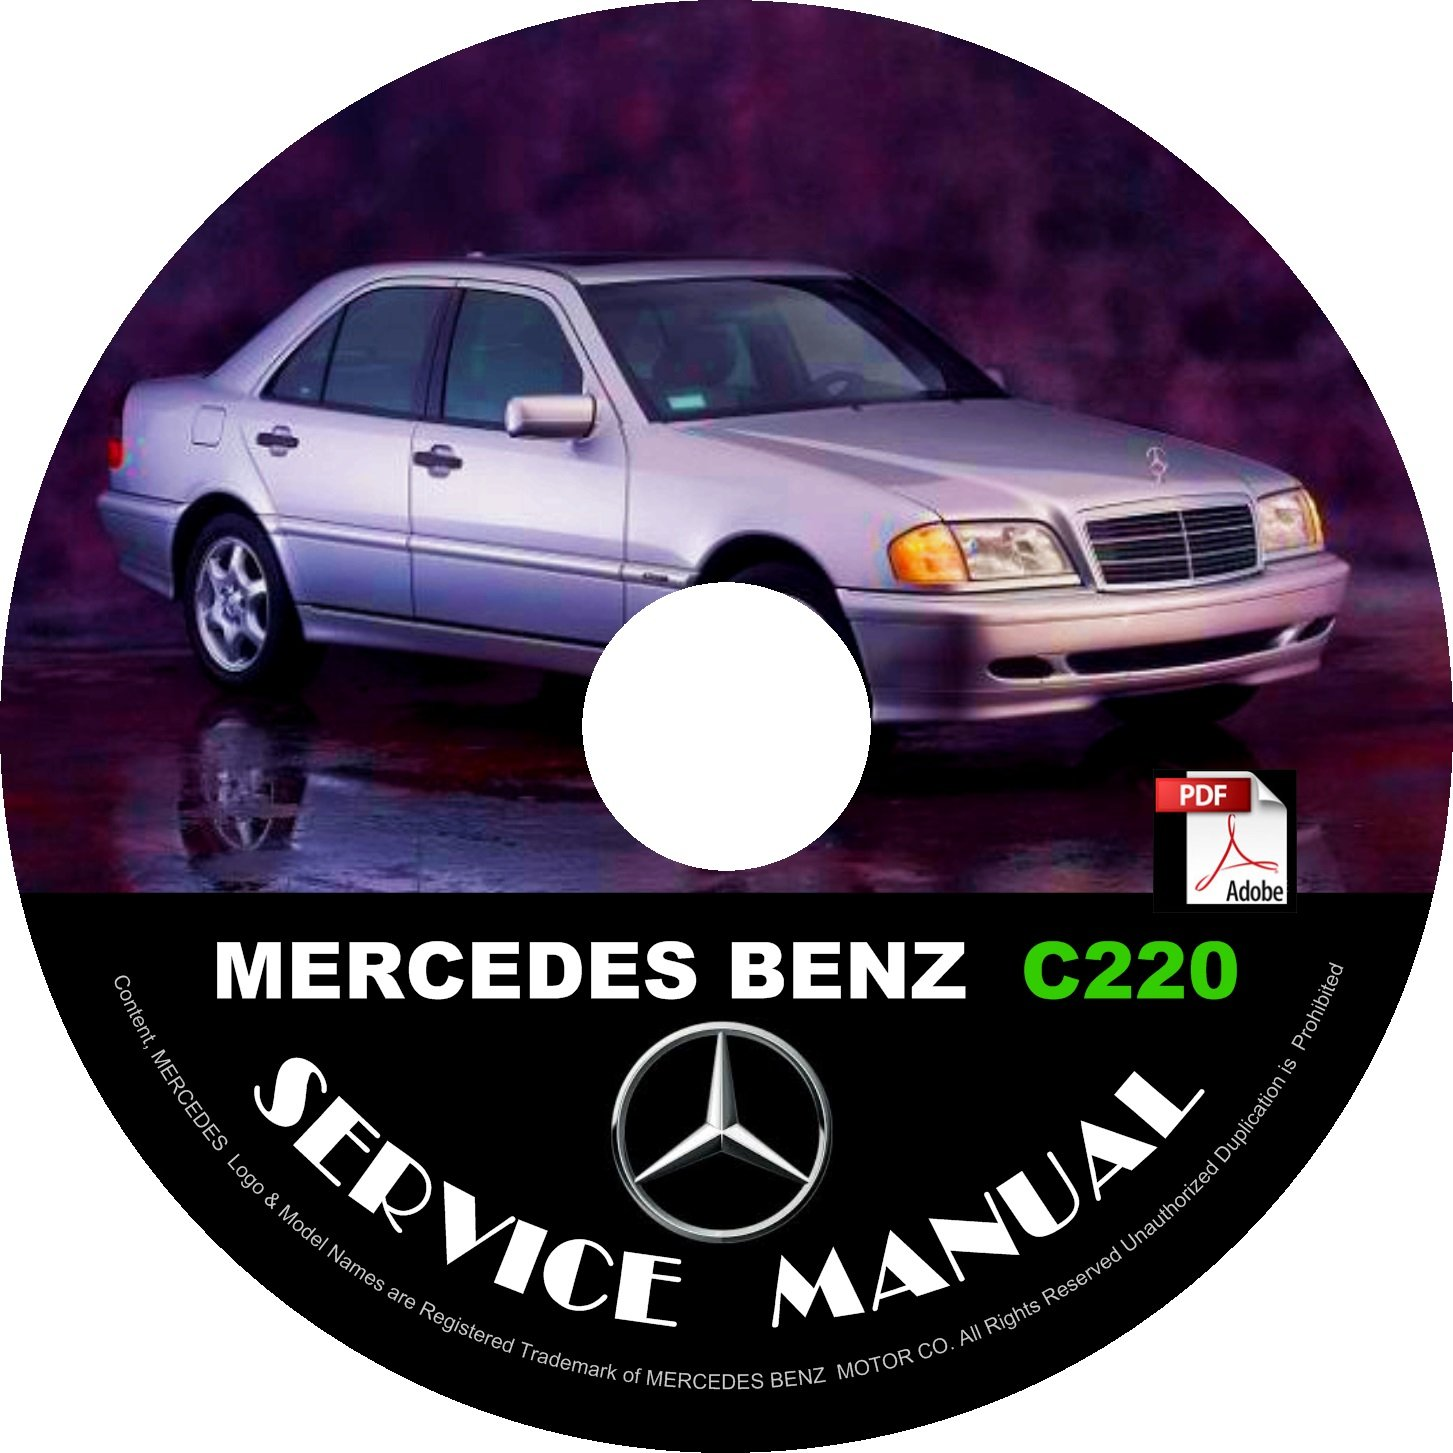 1994 mercedes benz c220 factory service repair shop manual for 1994 mercedes benz c220